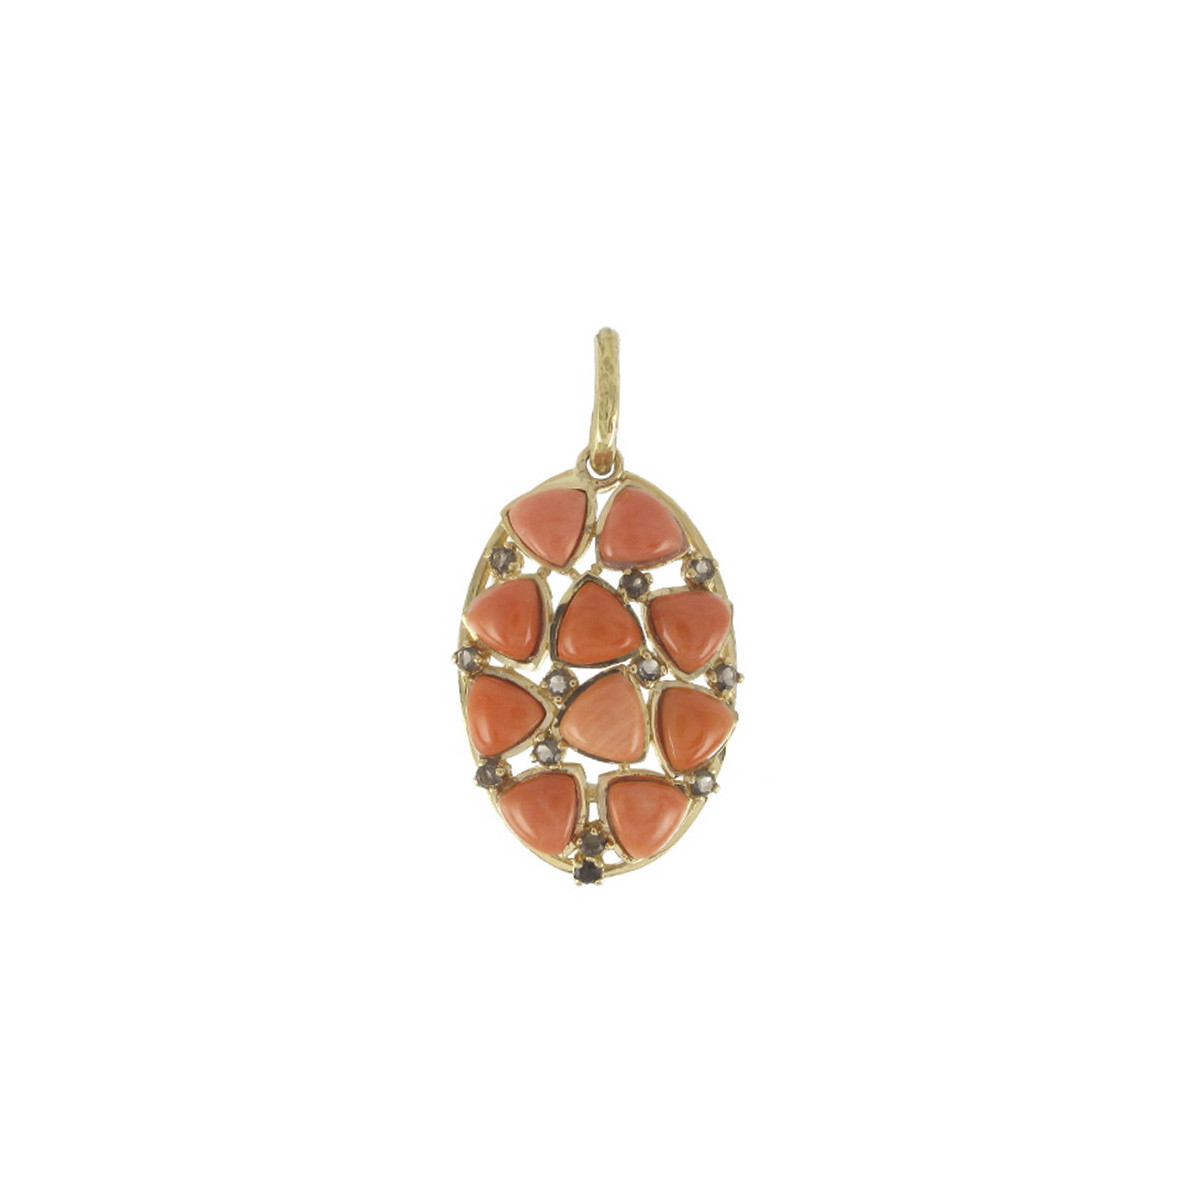 GOLD PENDANT WITH CORAL AND QUARTZ